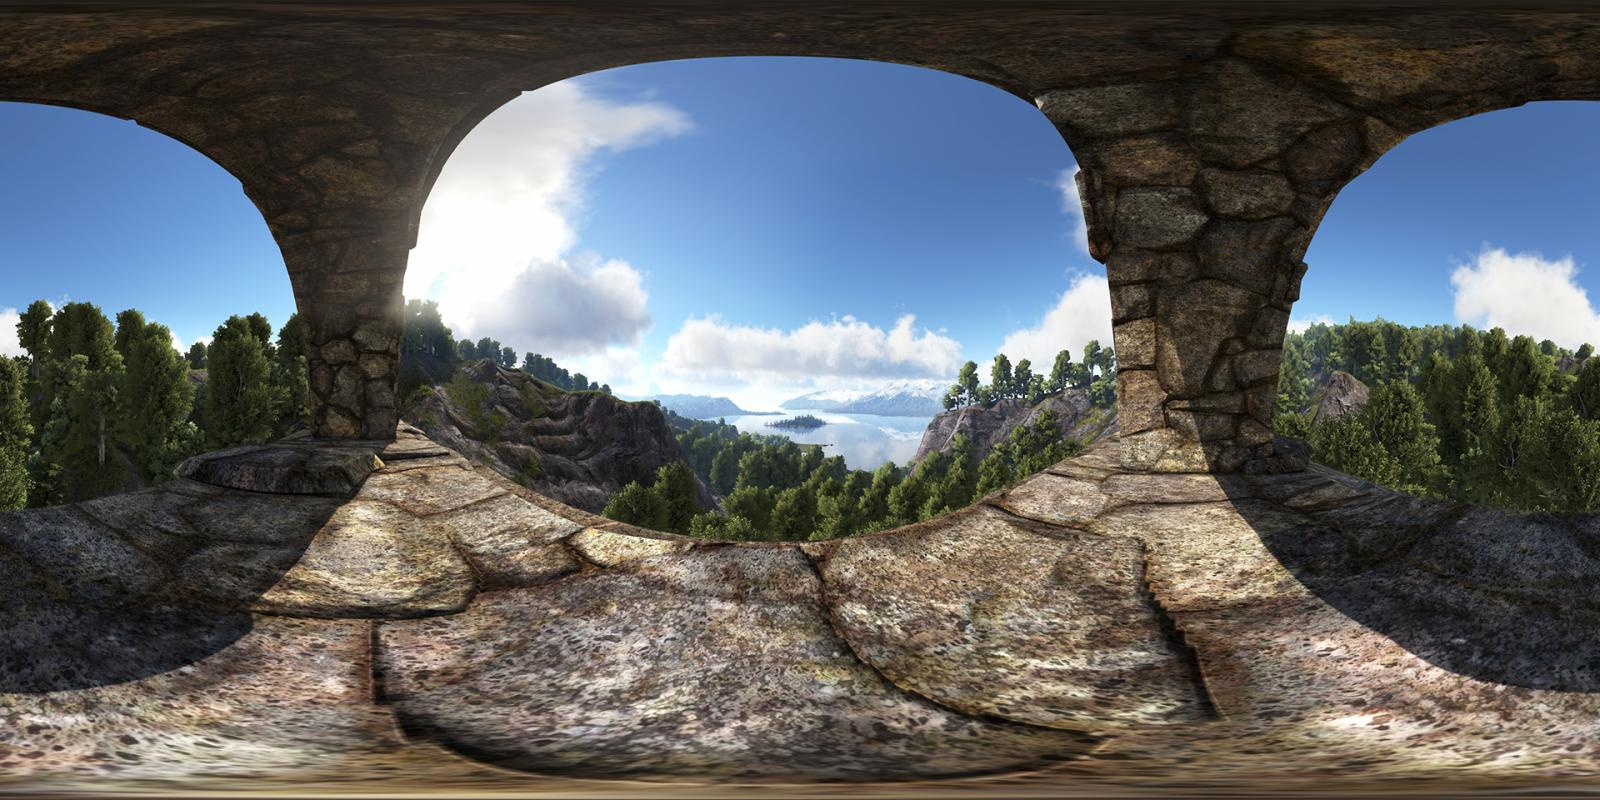 large.58d5b77c061eb_FataL1ty-View-Panoramic360Stereoscopic3D.jpg